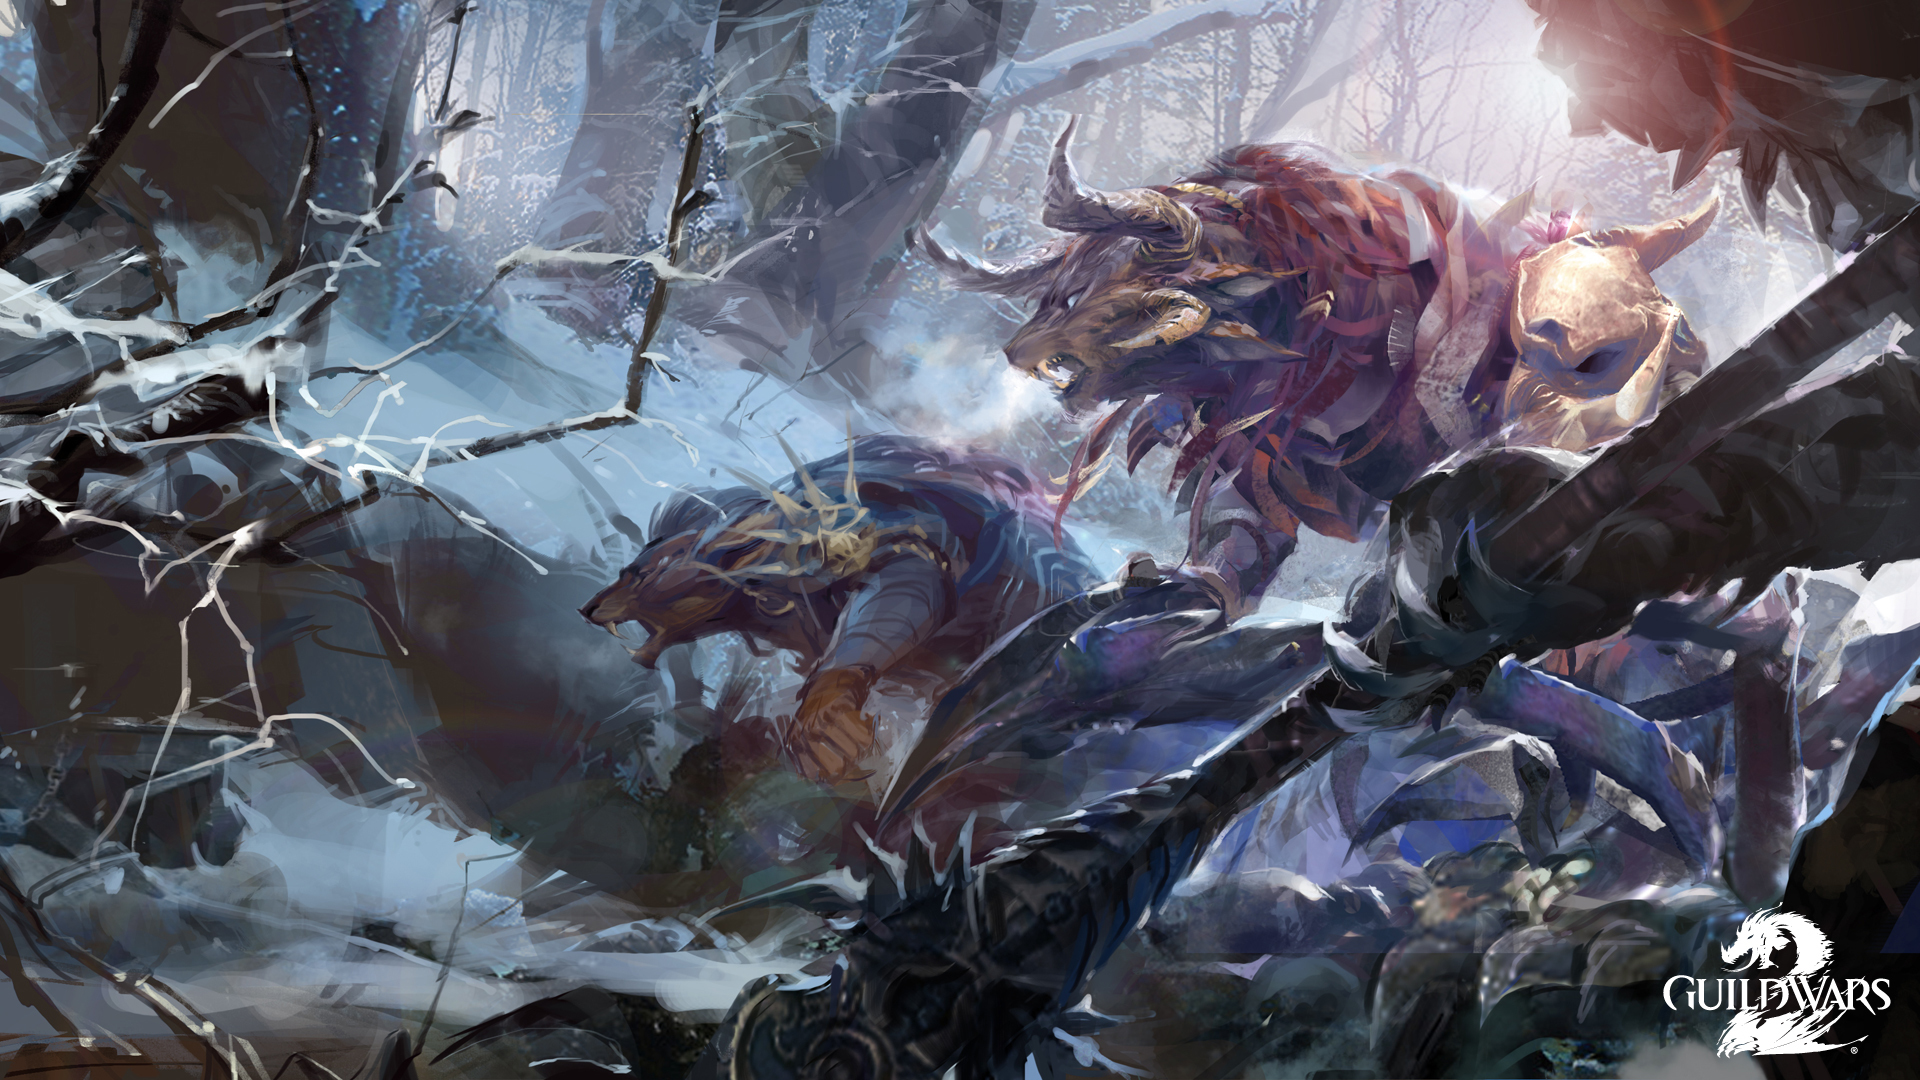 Image Guild Wars 2 Monsters Fantasy Vdeo Game Fighting 1920x1080